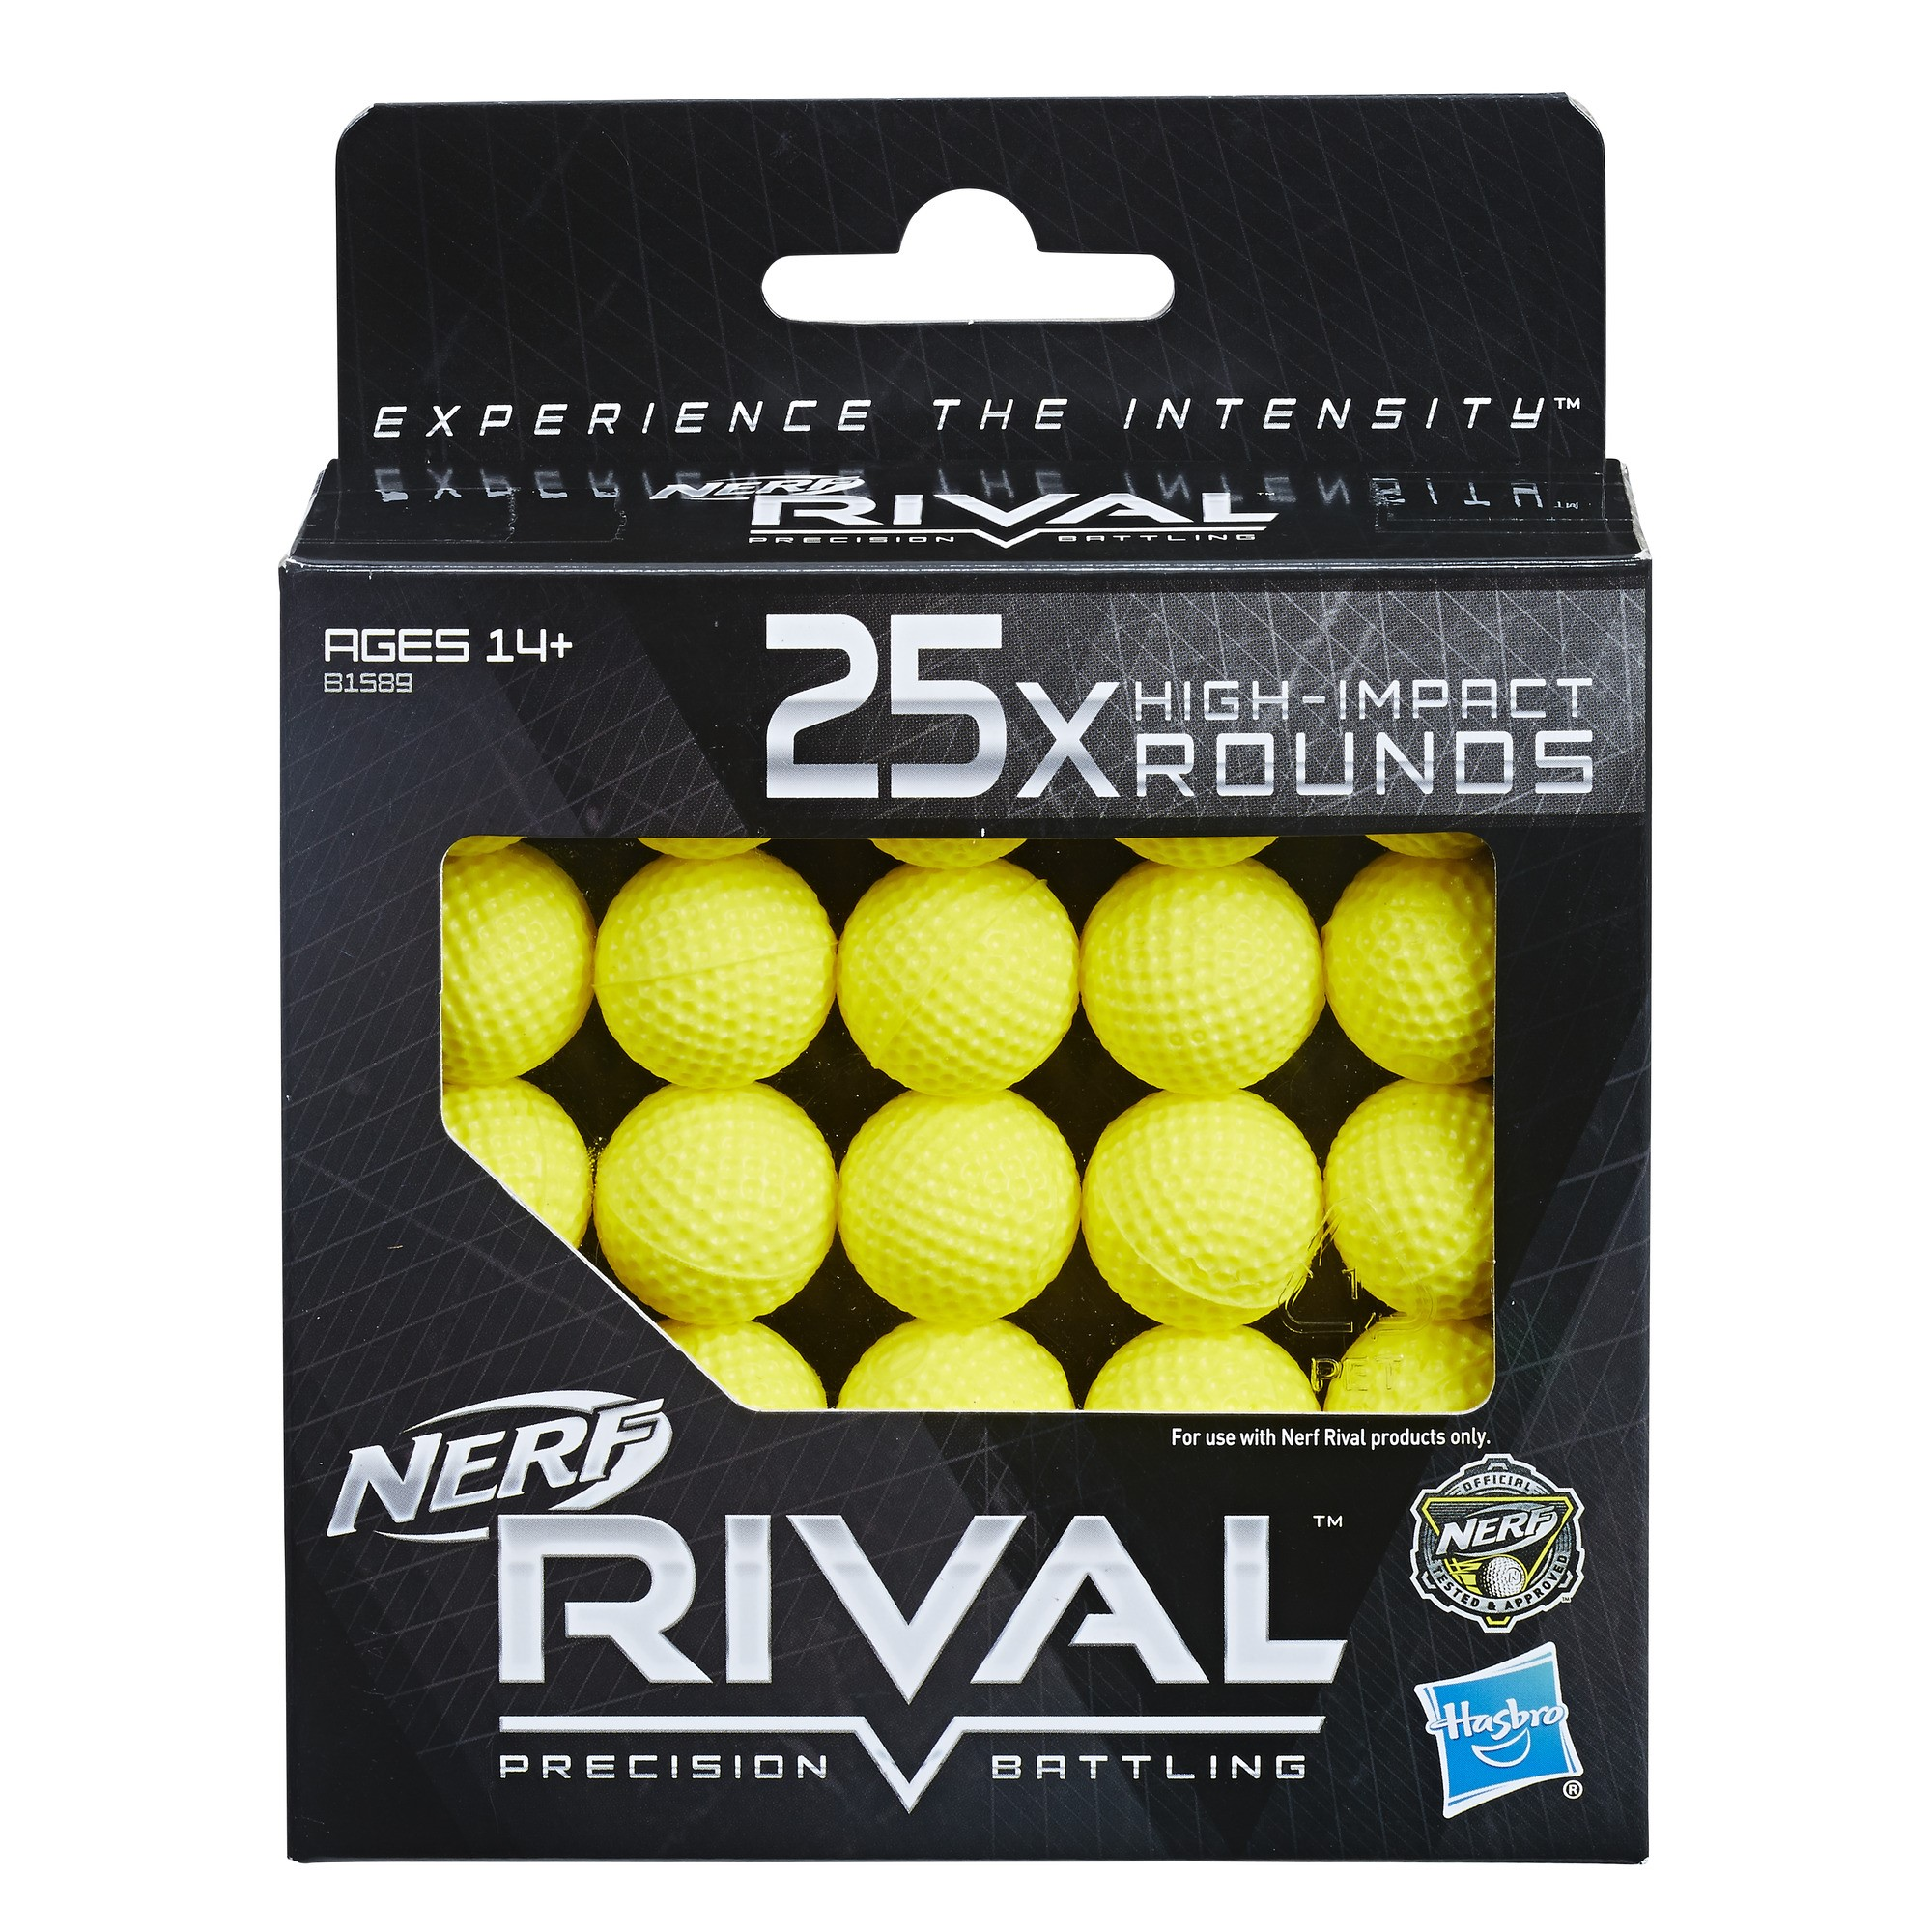 Nerf Rival 25-round Refill